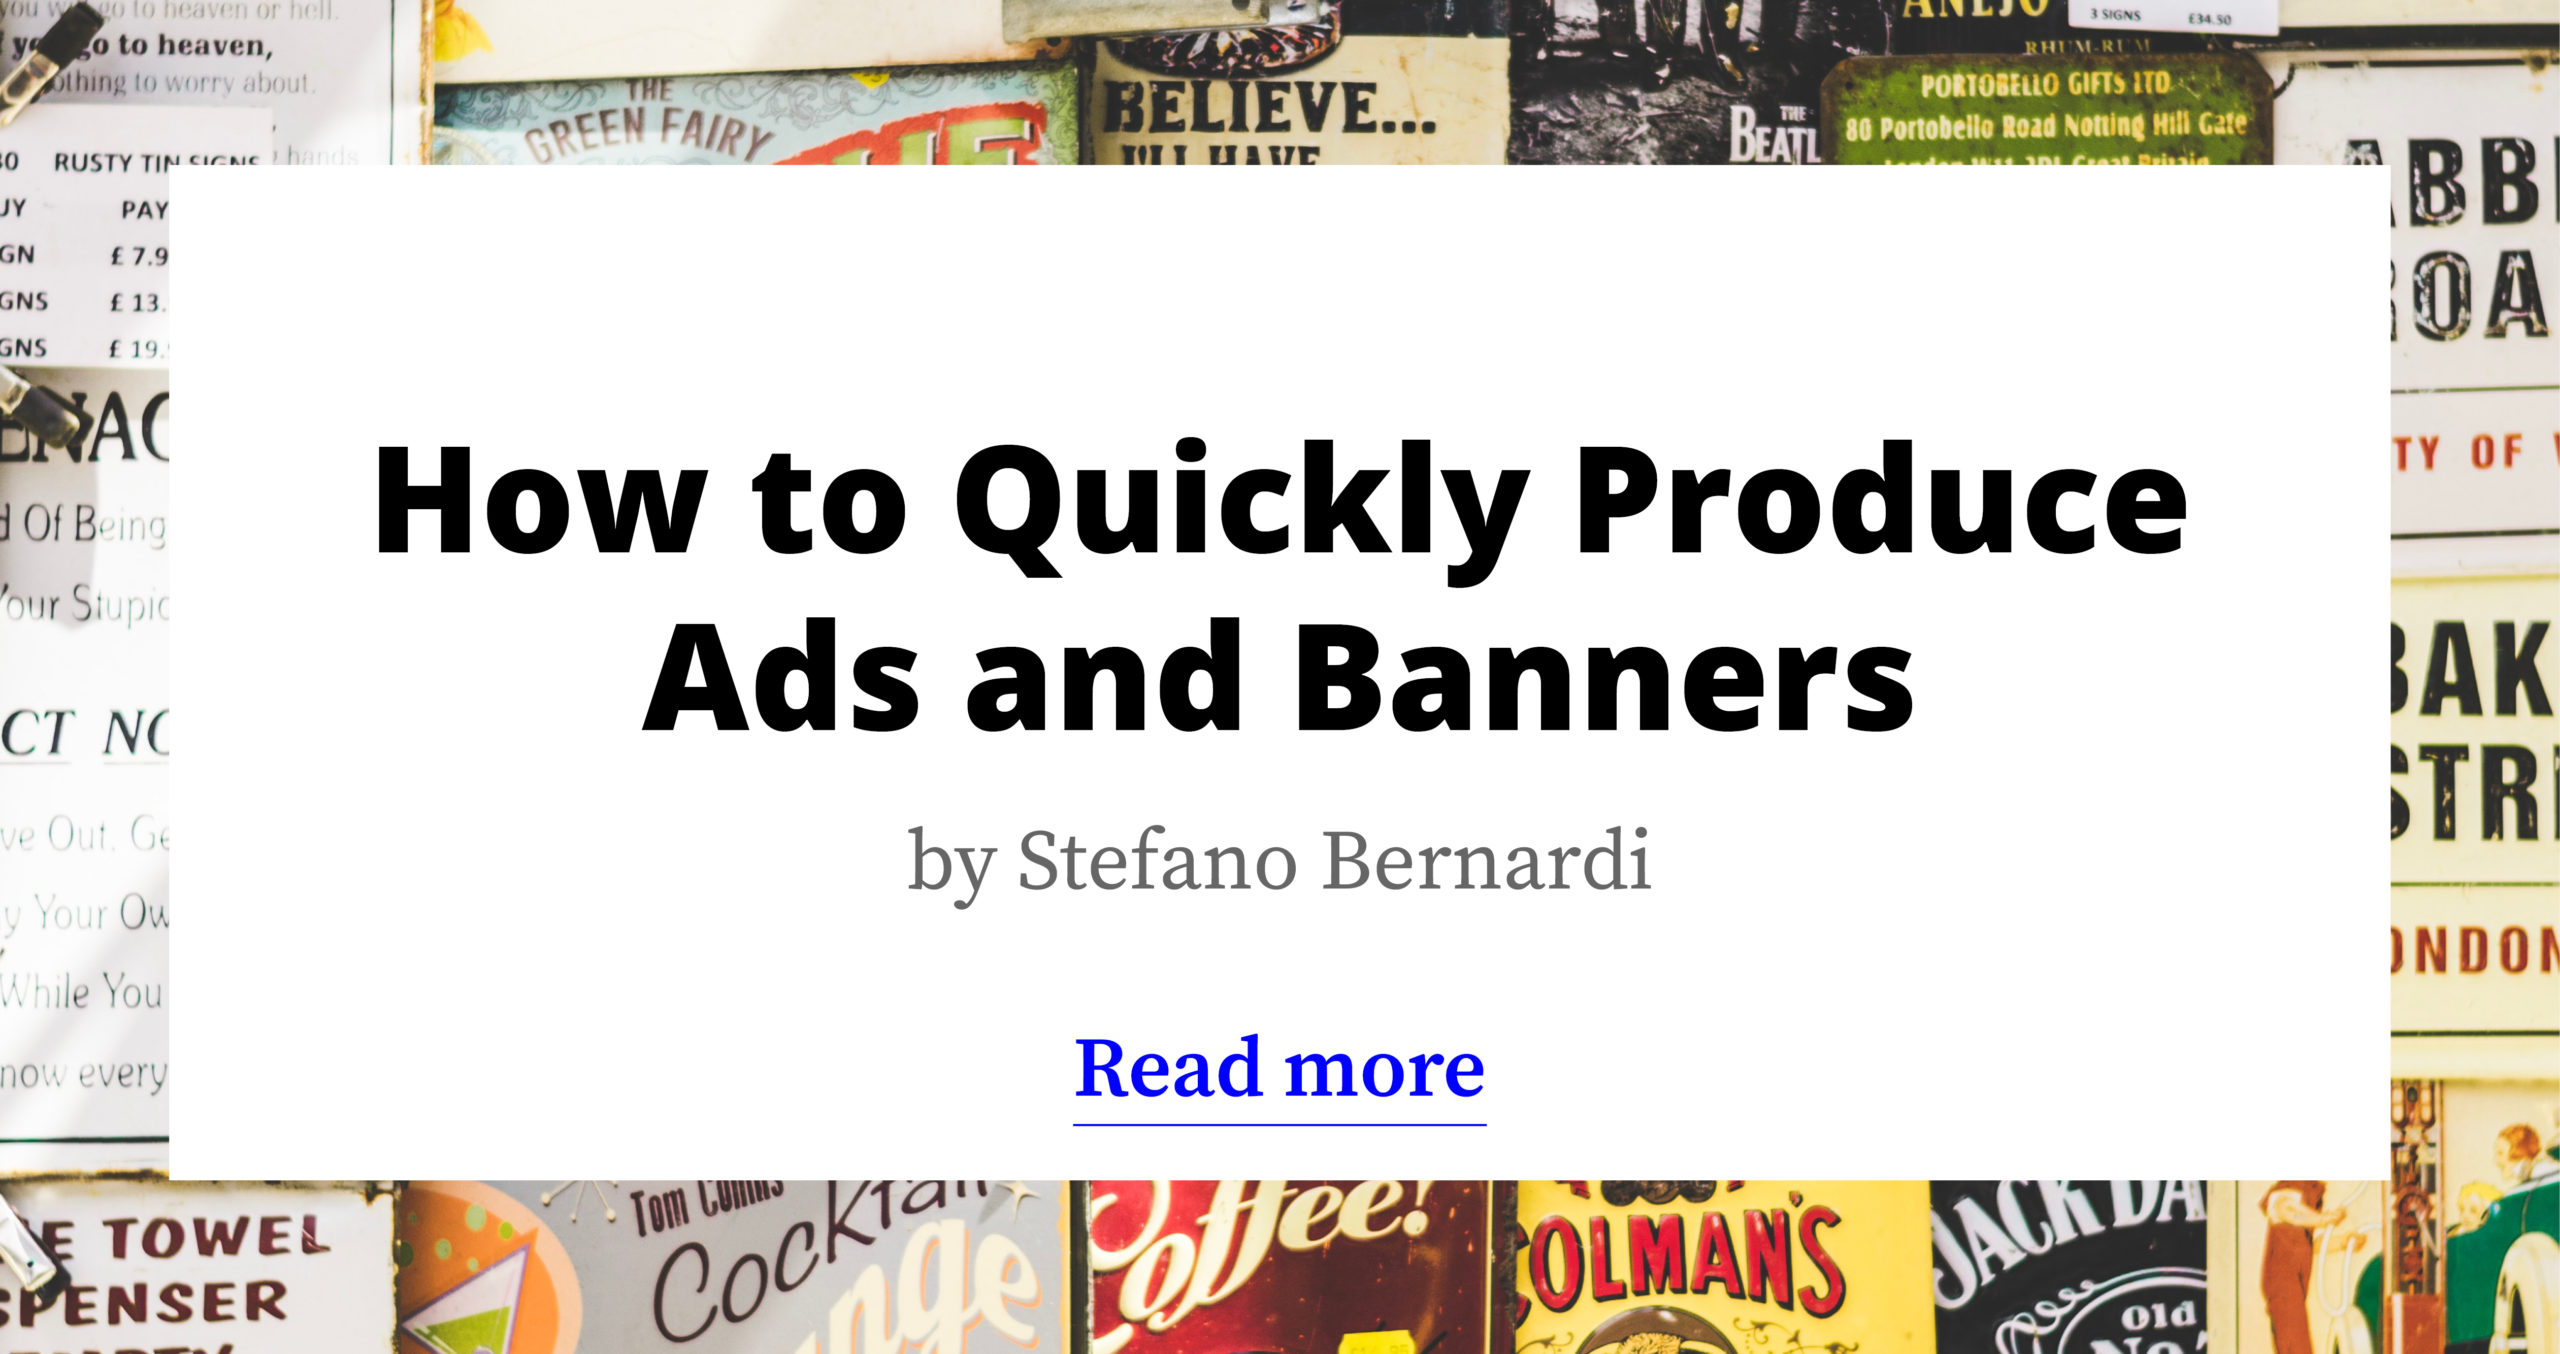 Quickly produce Ads and Banners for all Your Markets